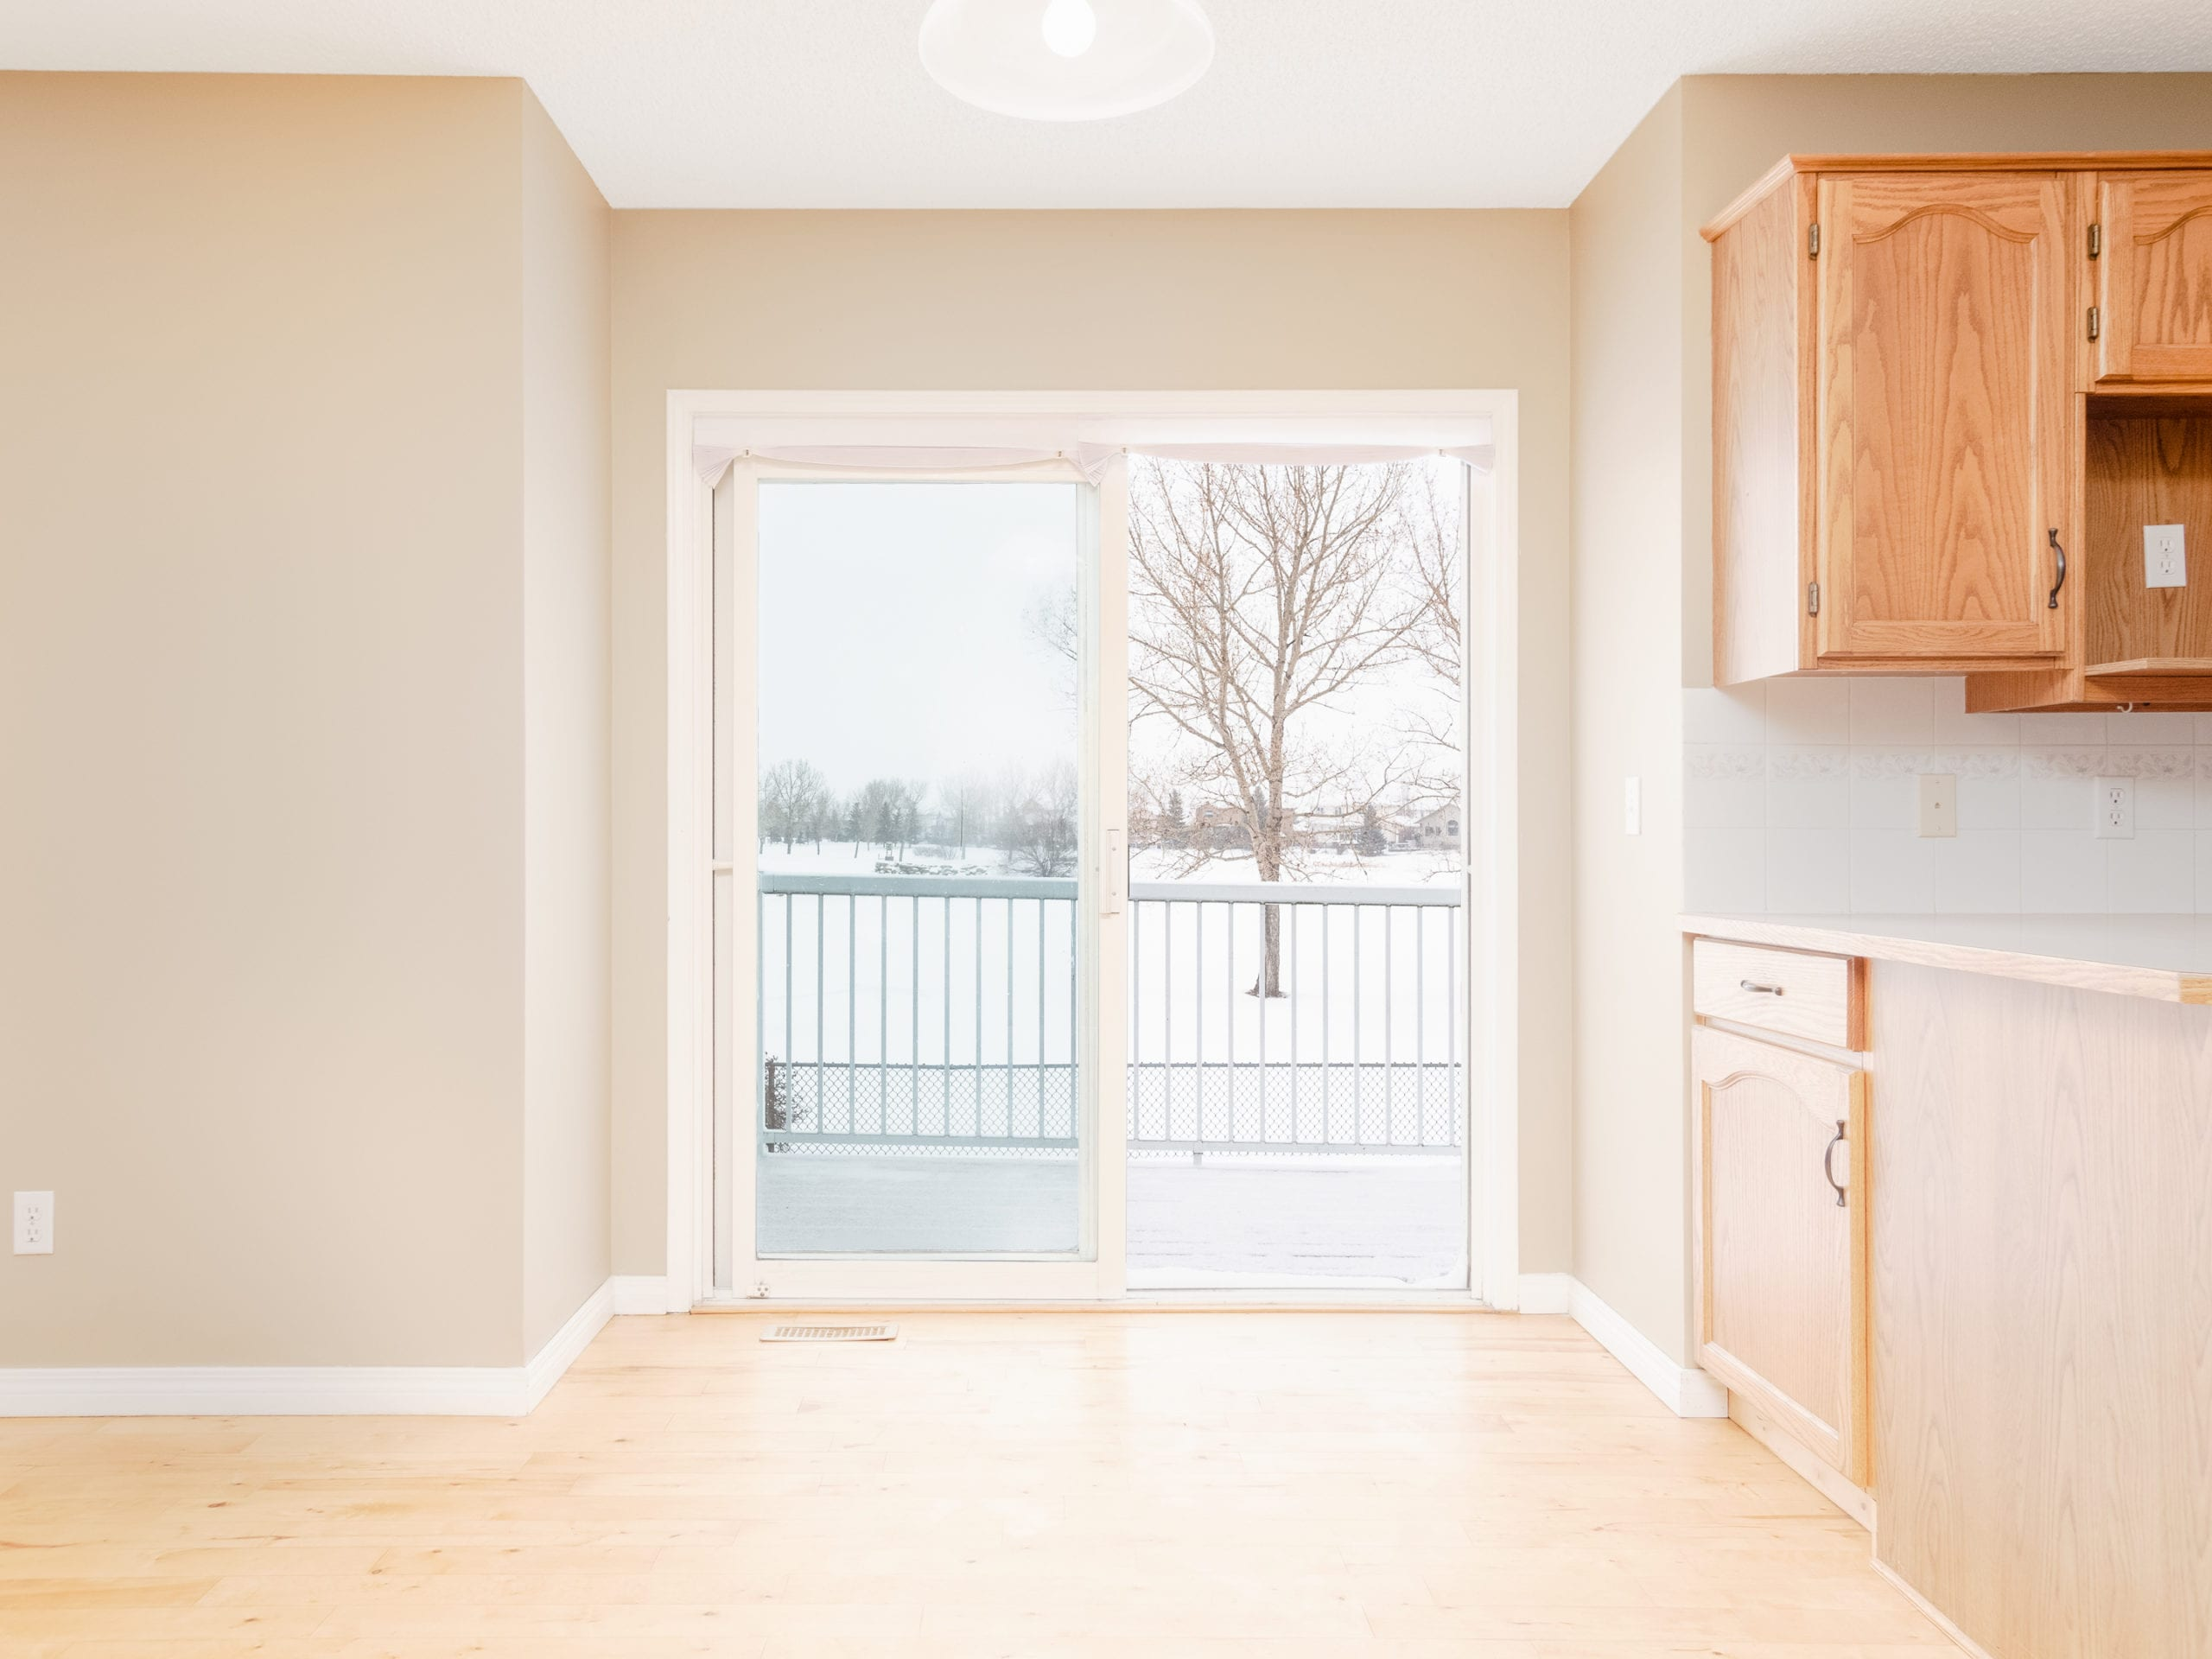 Hello Gorgeous - 143 Woodside Road NW, Airdrie AB. - Tara Molina Real Estate (12 of 54)